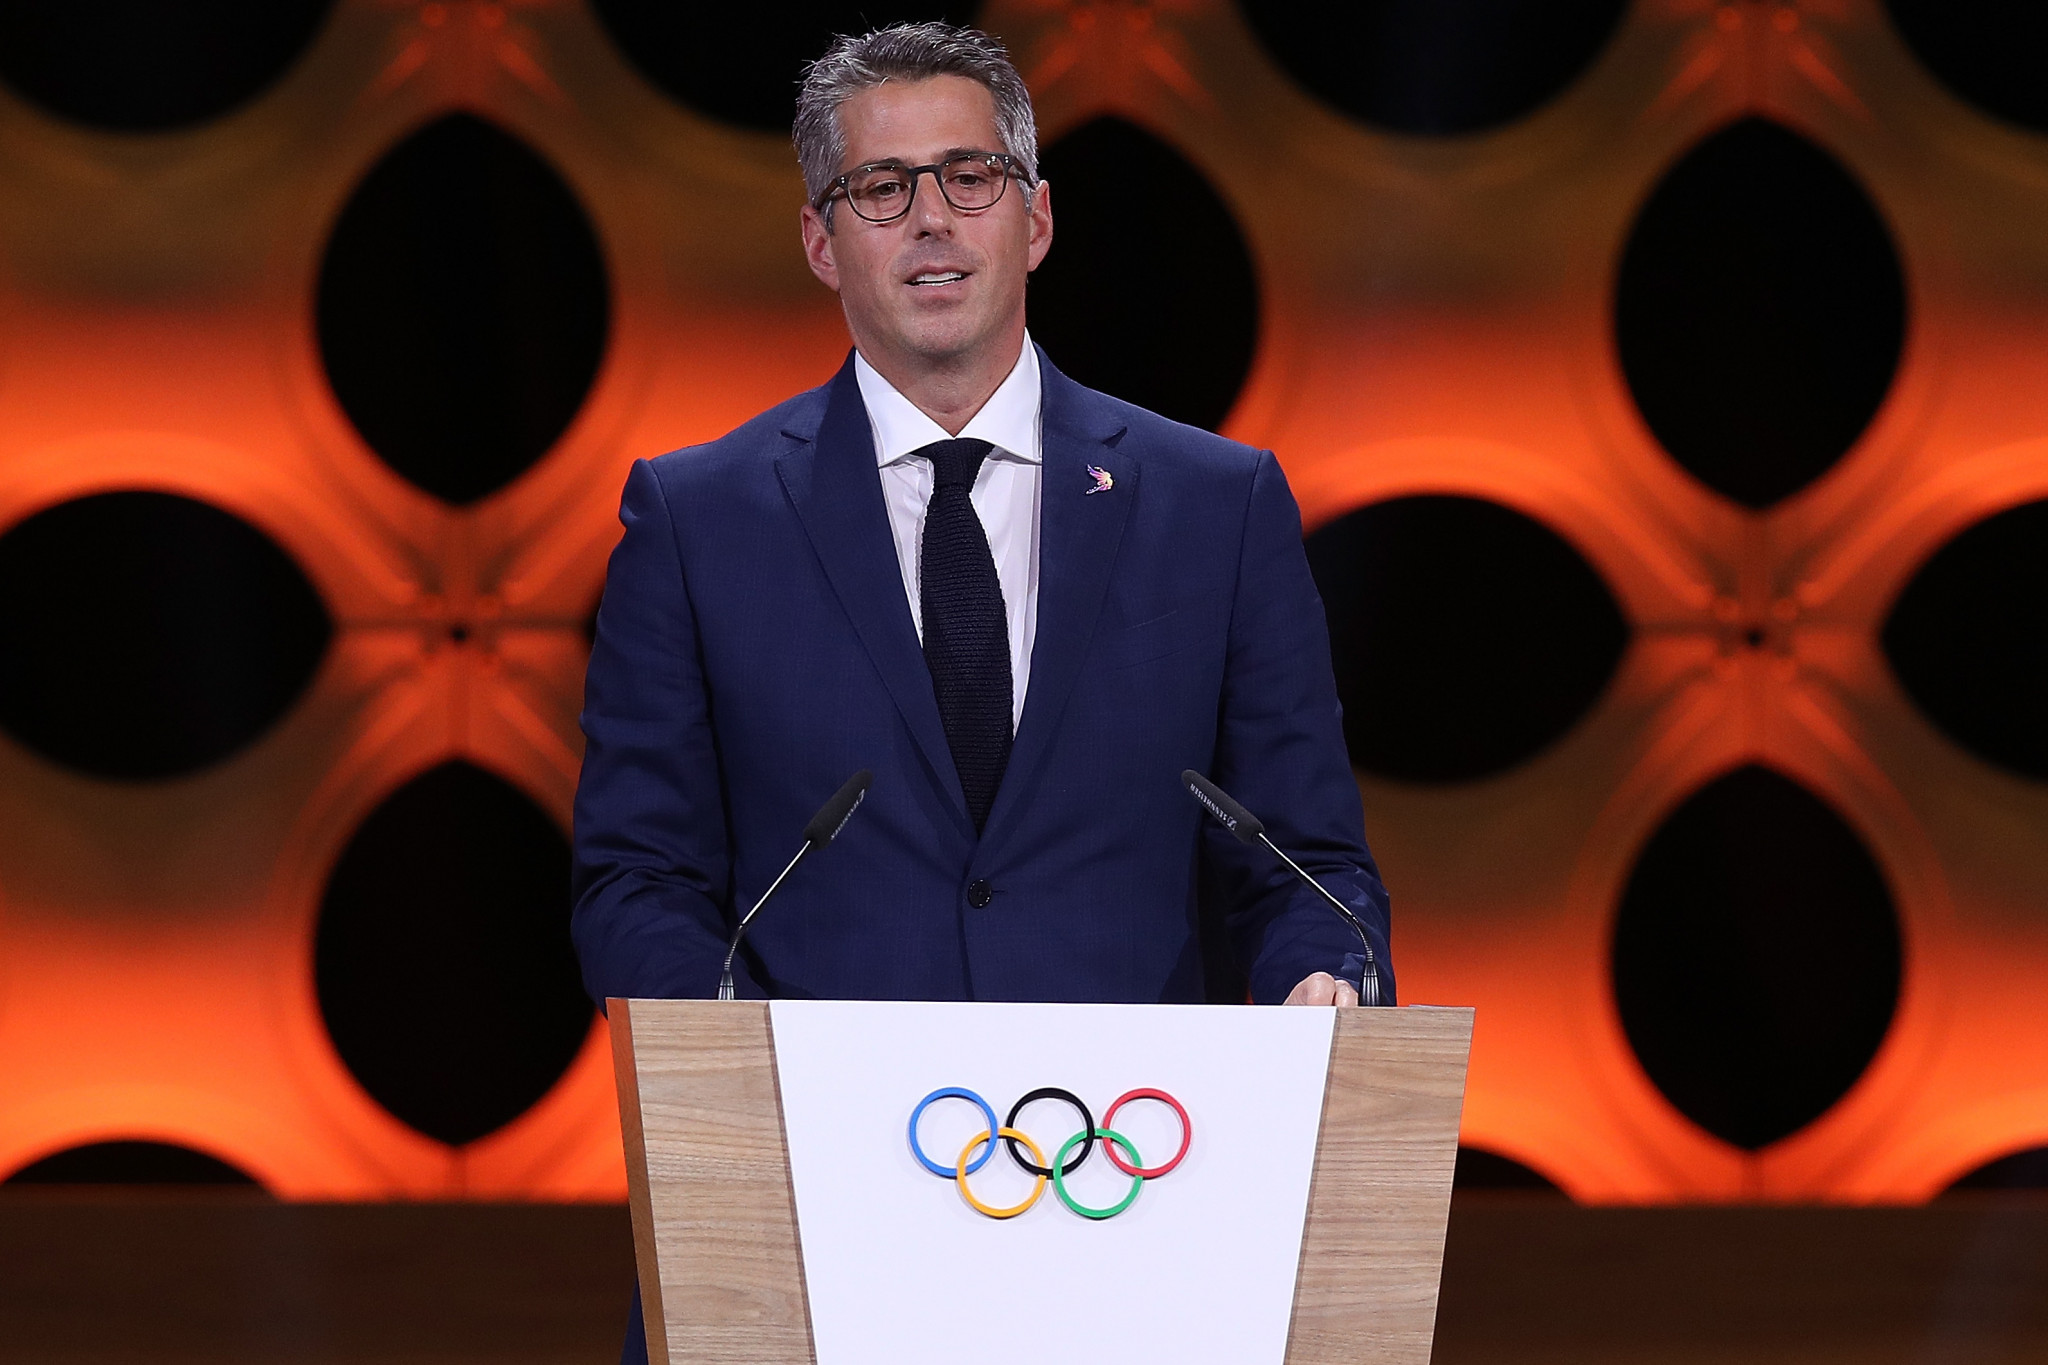 Casey Wasserman is considering entering the race to become Governor of California after Los Angeles 2028 ©Getty Images